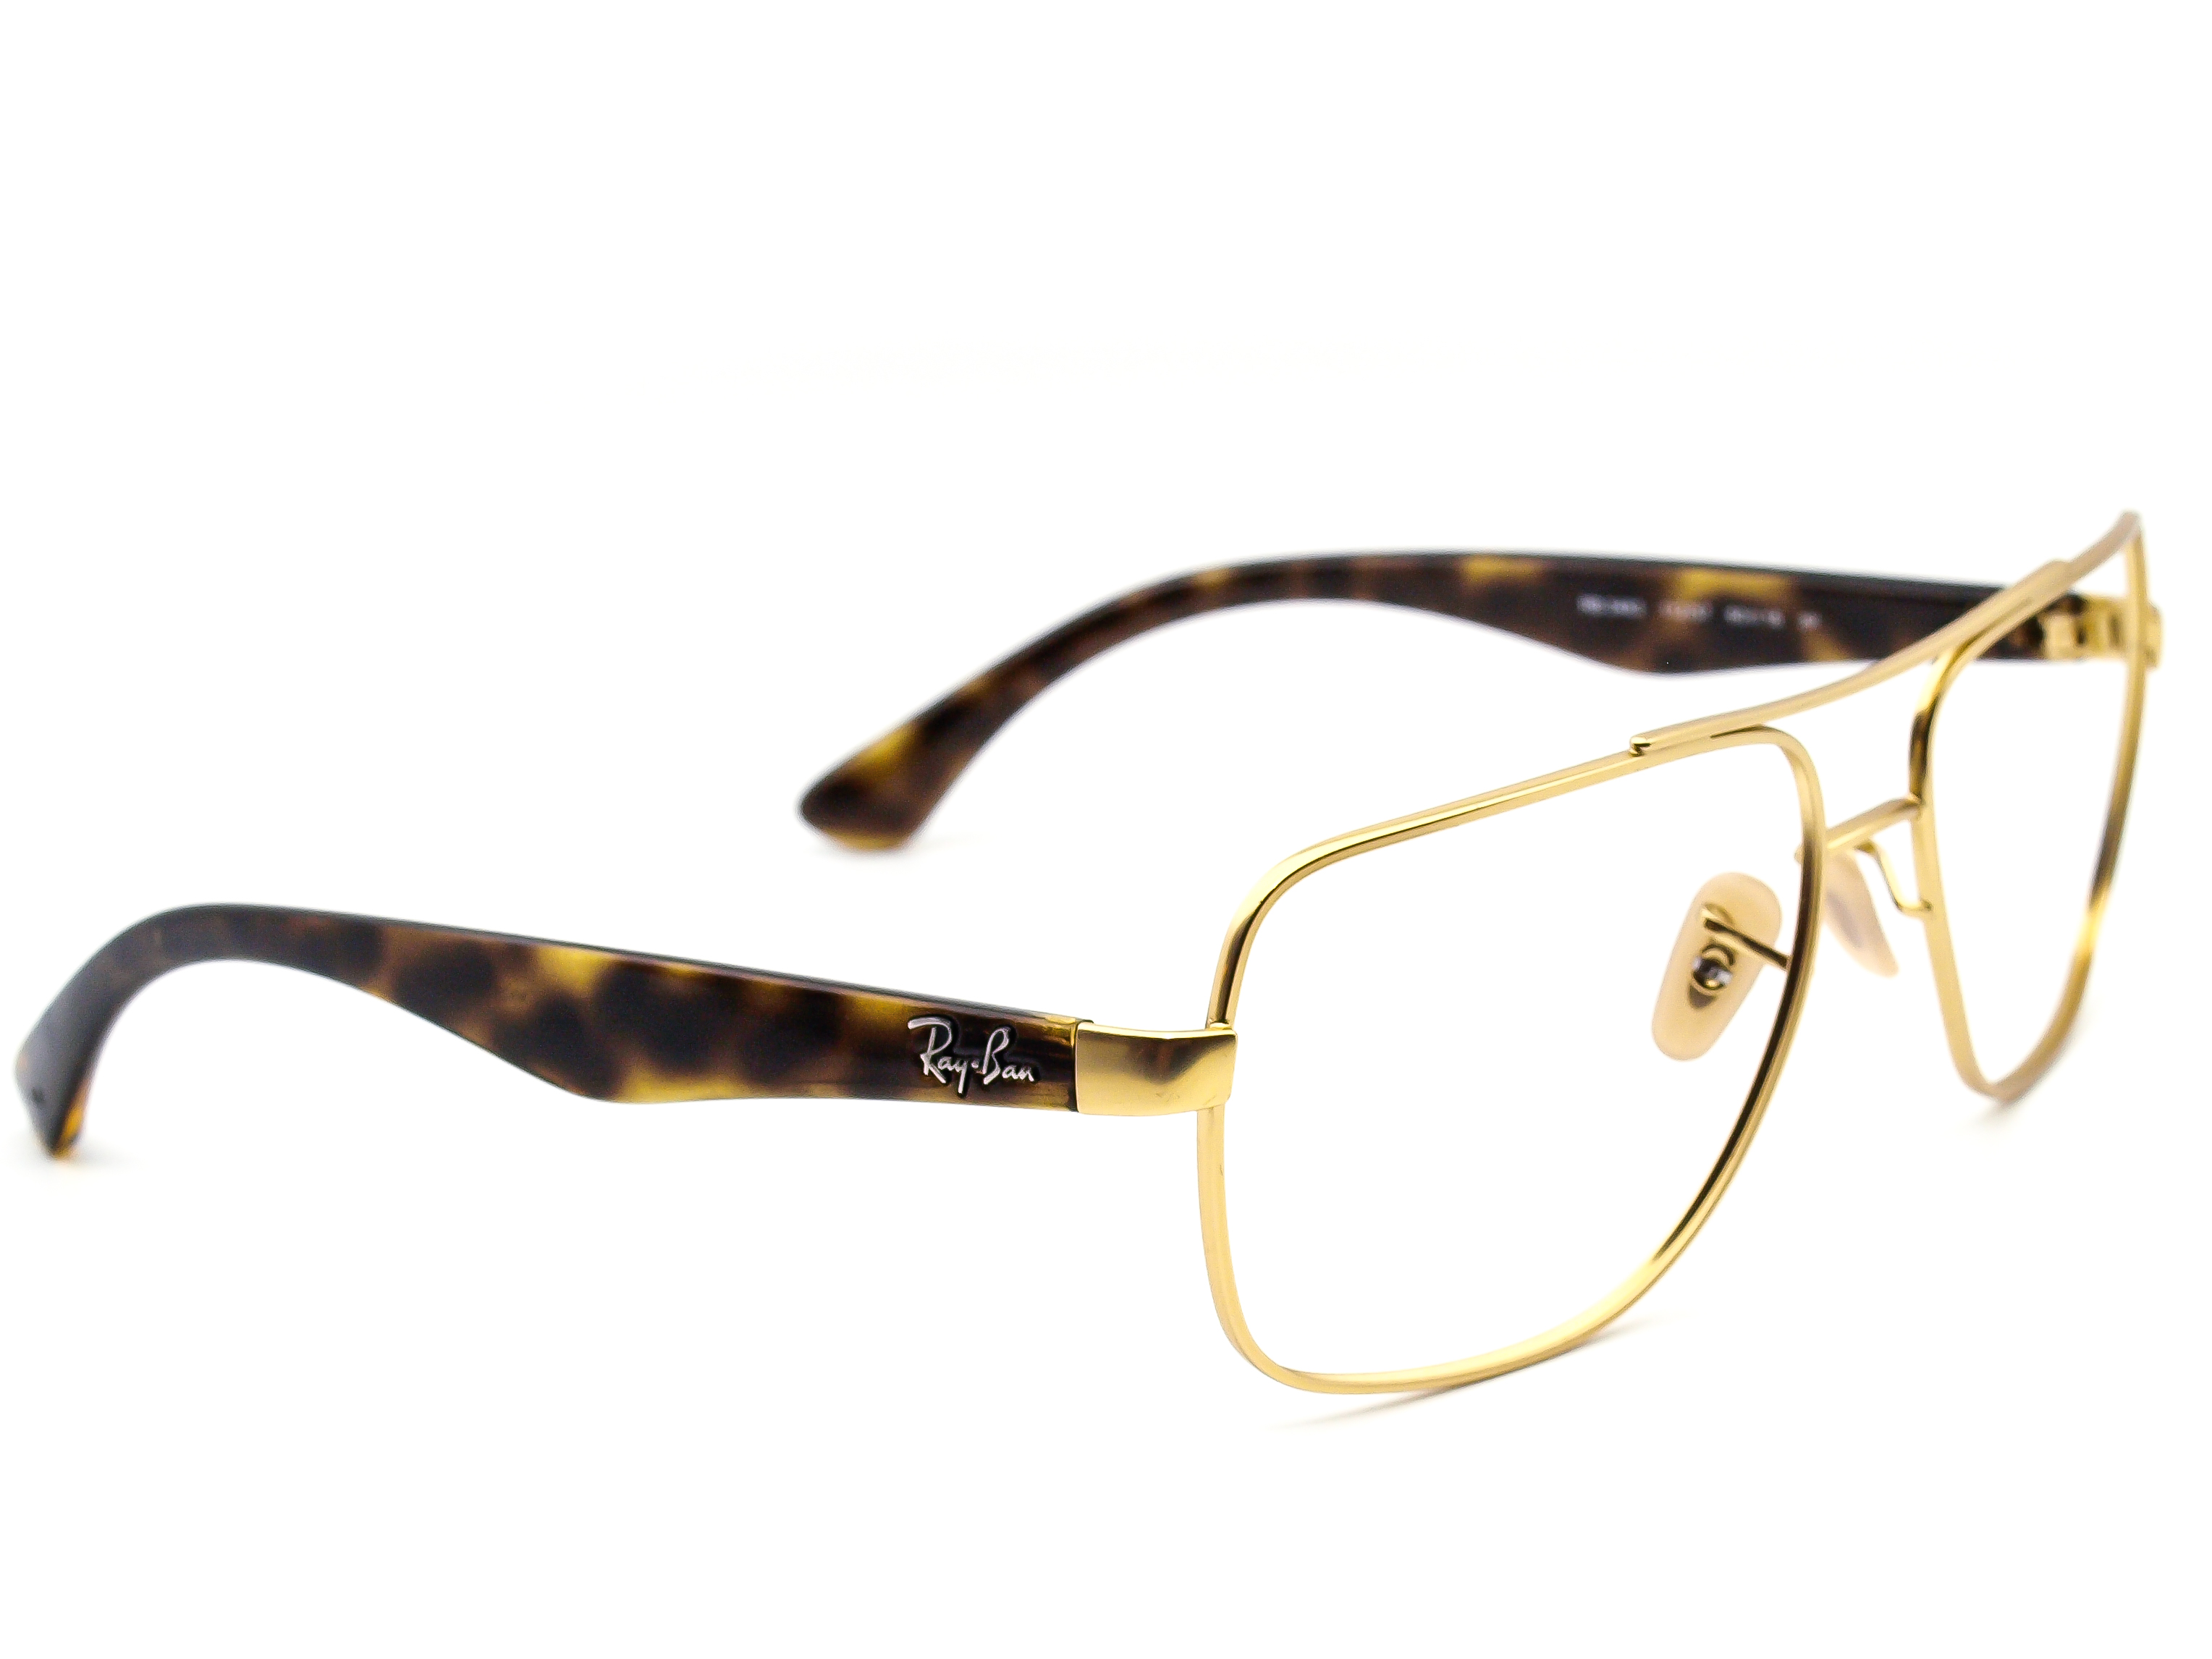 67fe72d42f774 Ray Ban RB 3483 112 57 Sunglasses Frame Only